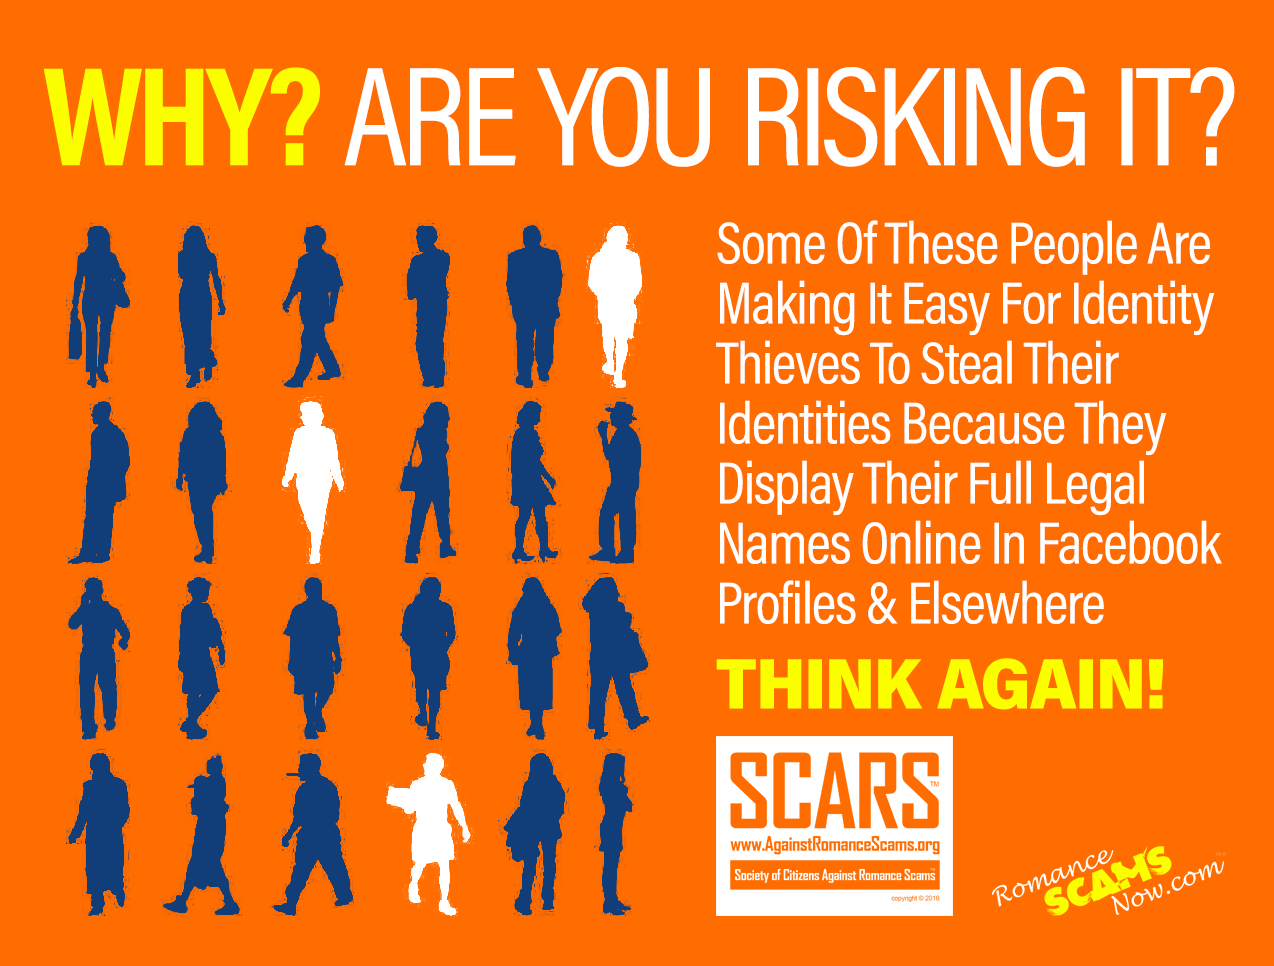 SCARS ™ / RSN™ Anti-Scam Poster 109